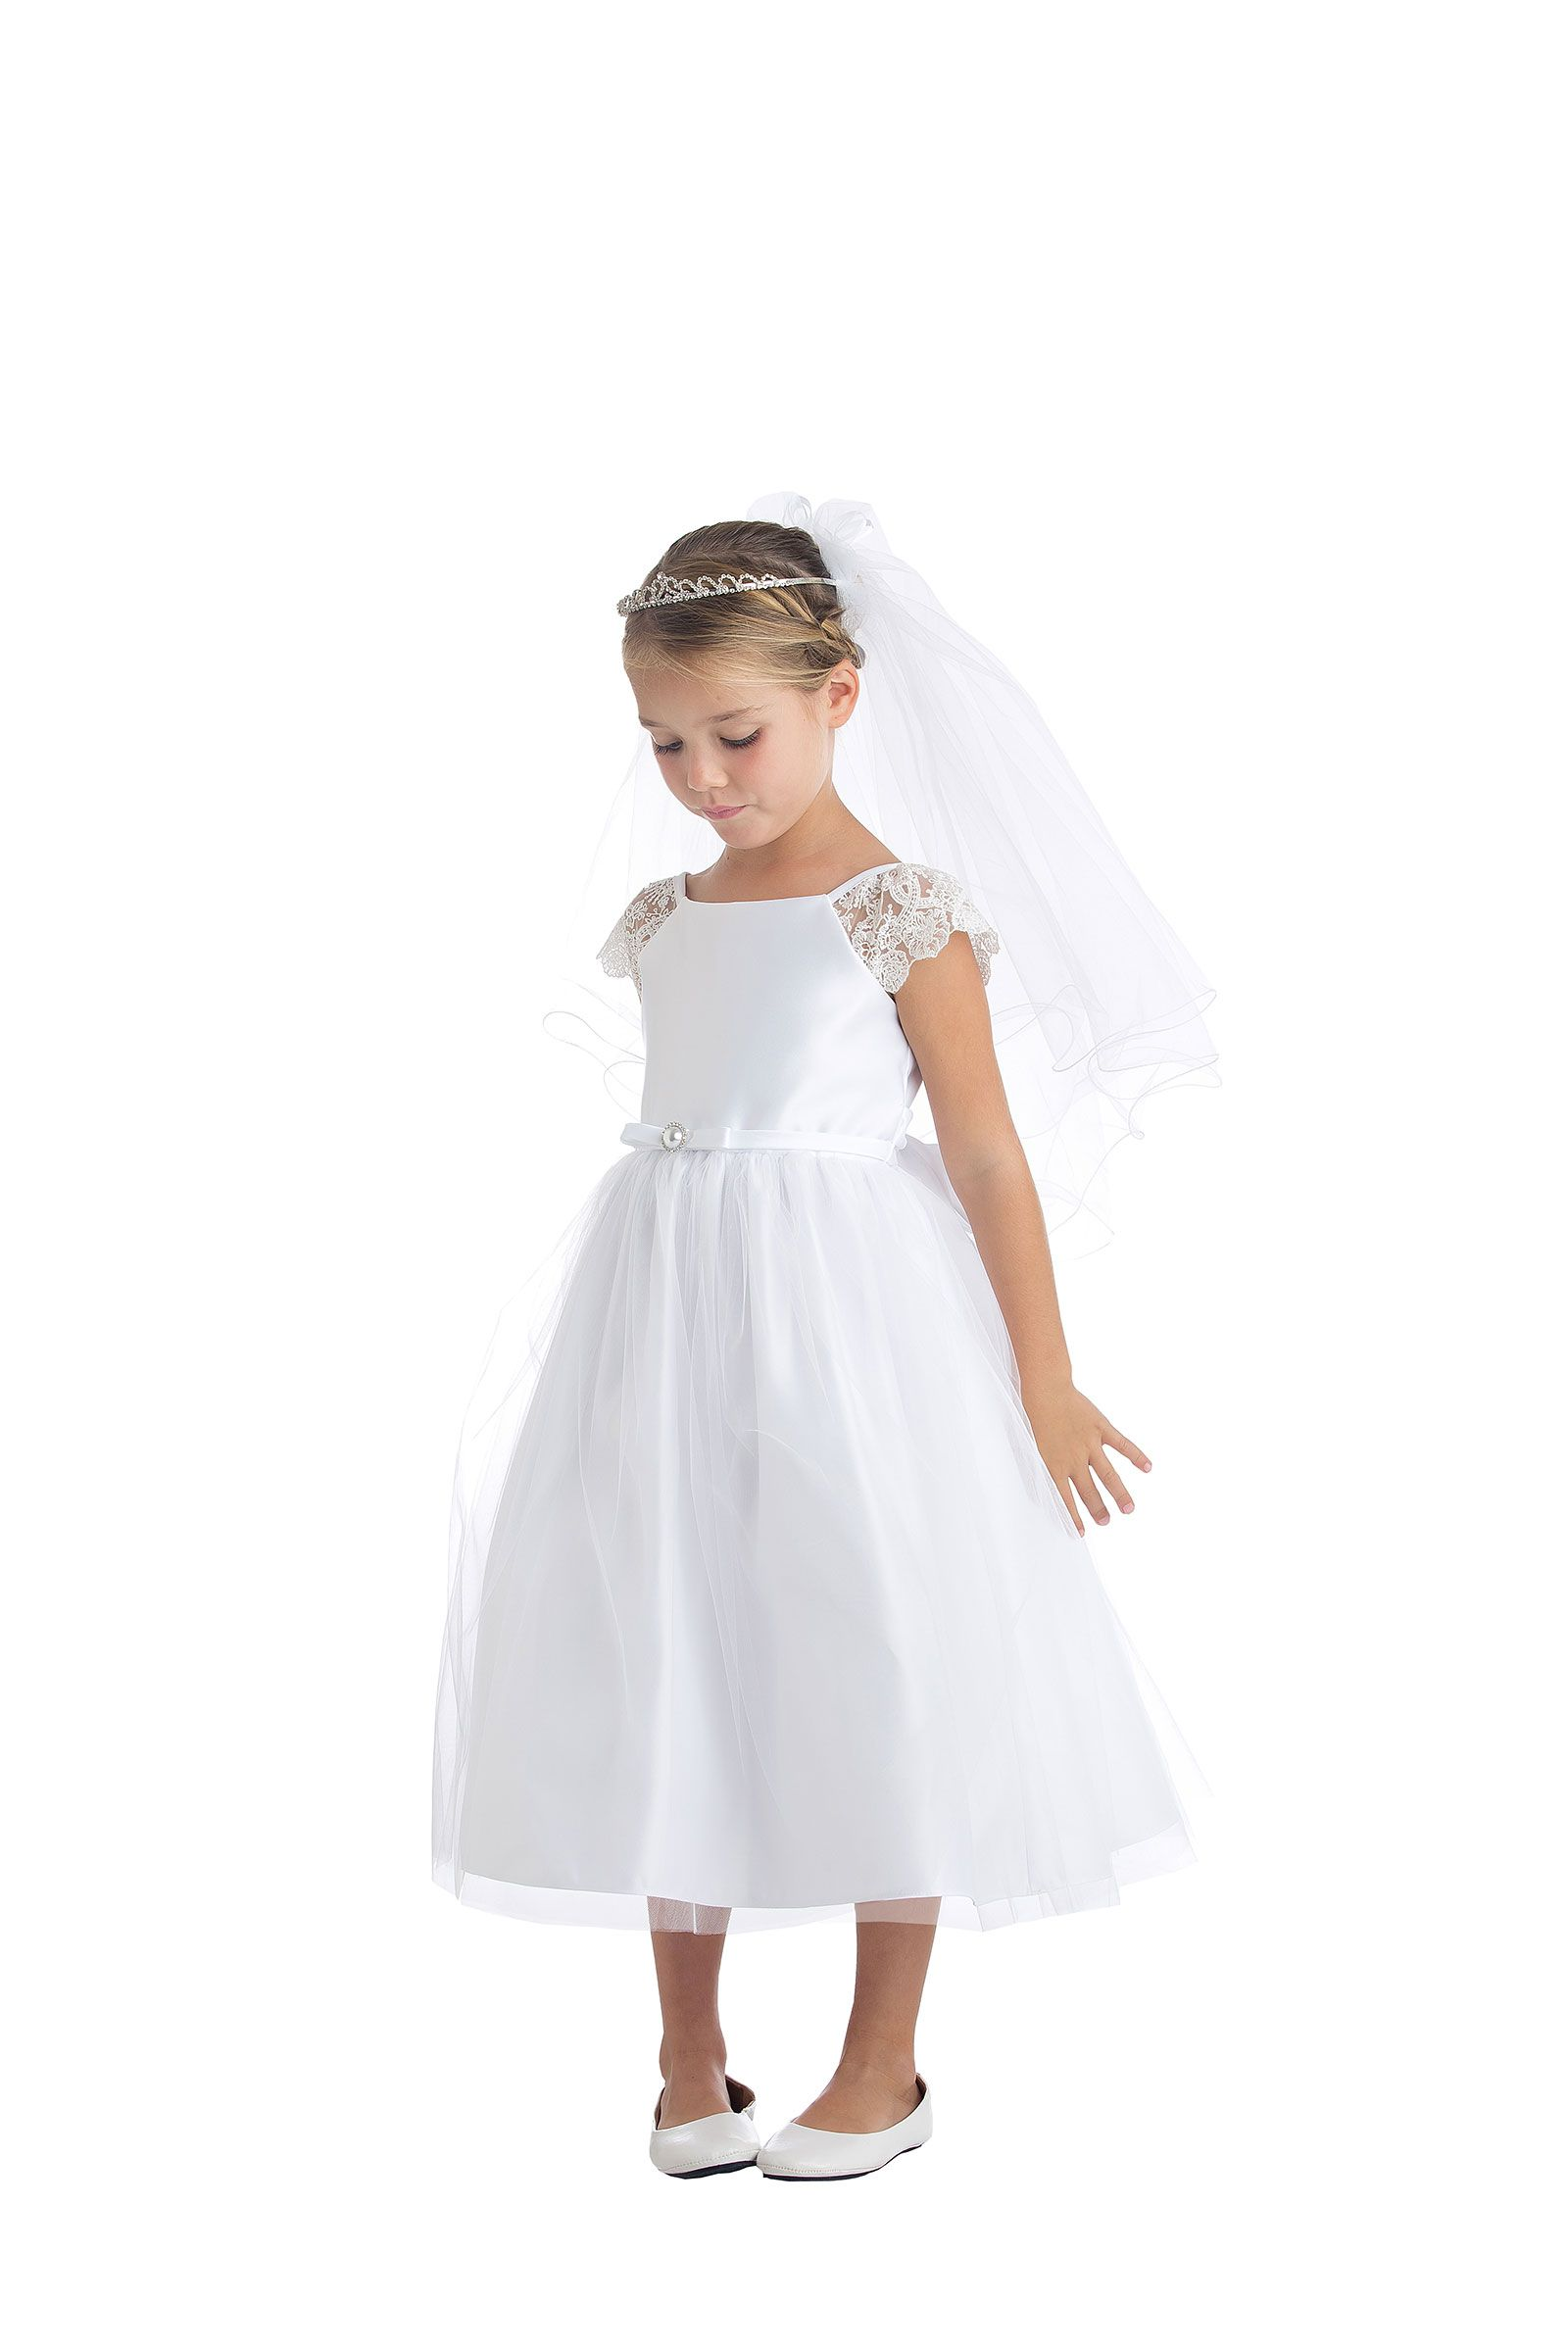 Girls Dress Style 621 White Cap Sleeve Satin And Lace Dress White Flower Girl Dresses First Communion Dresses Girls Communion Dresses [ 2400 x 1600 Pixel ]